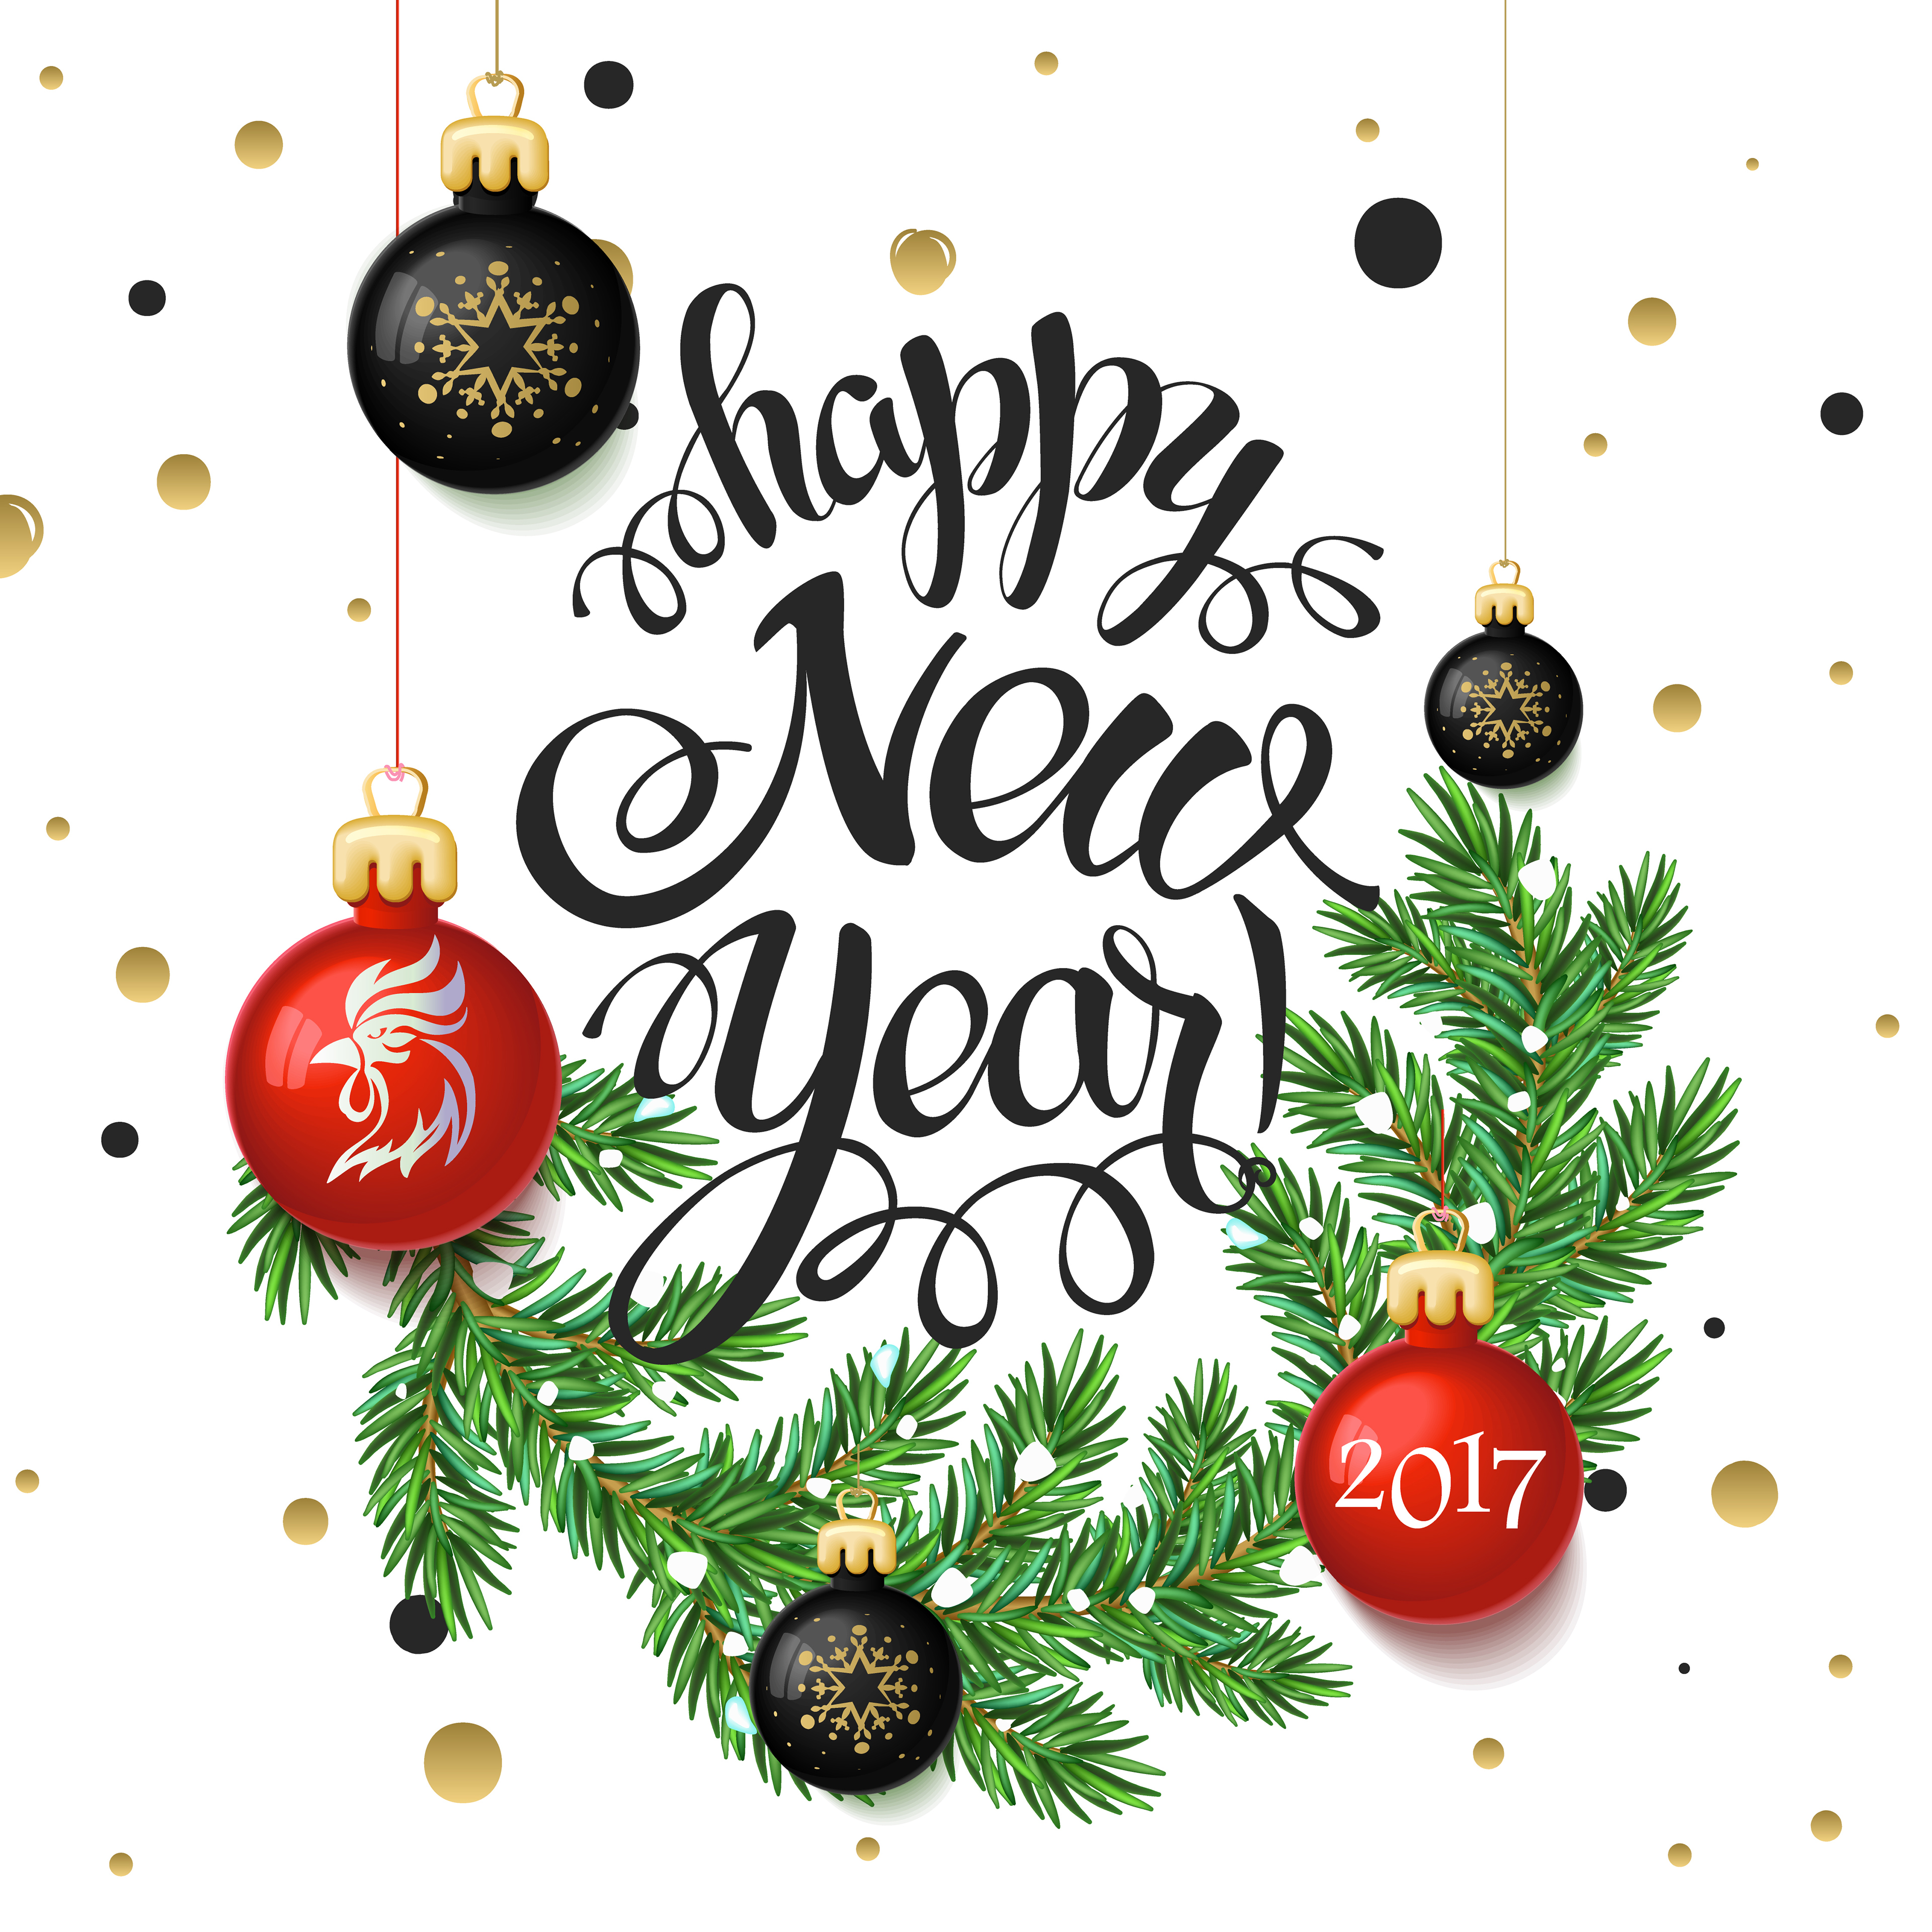 Merry Christmas and Happy New Year 2017 on Behance